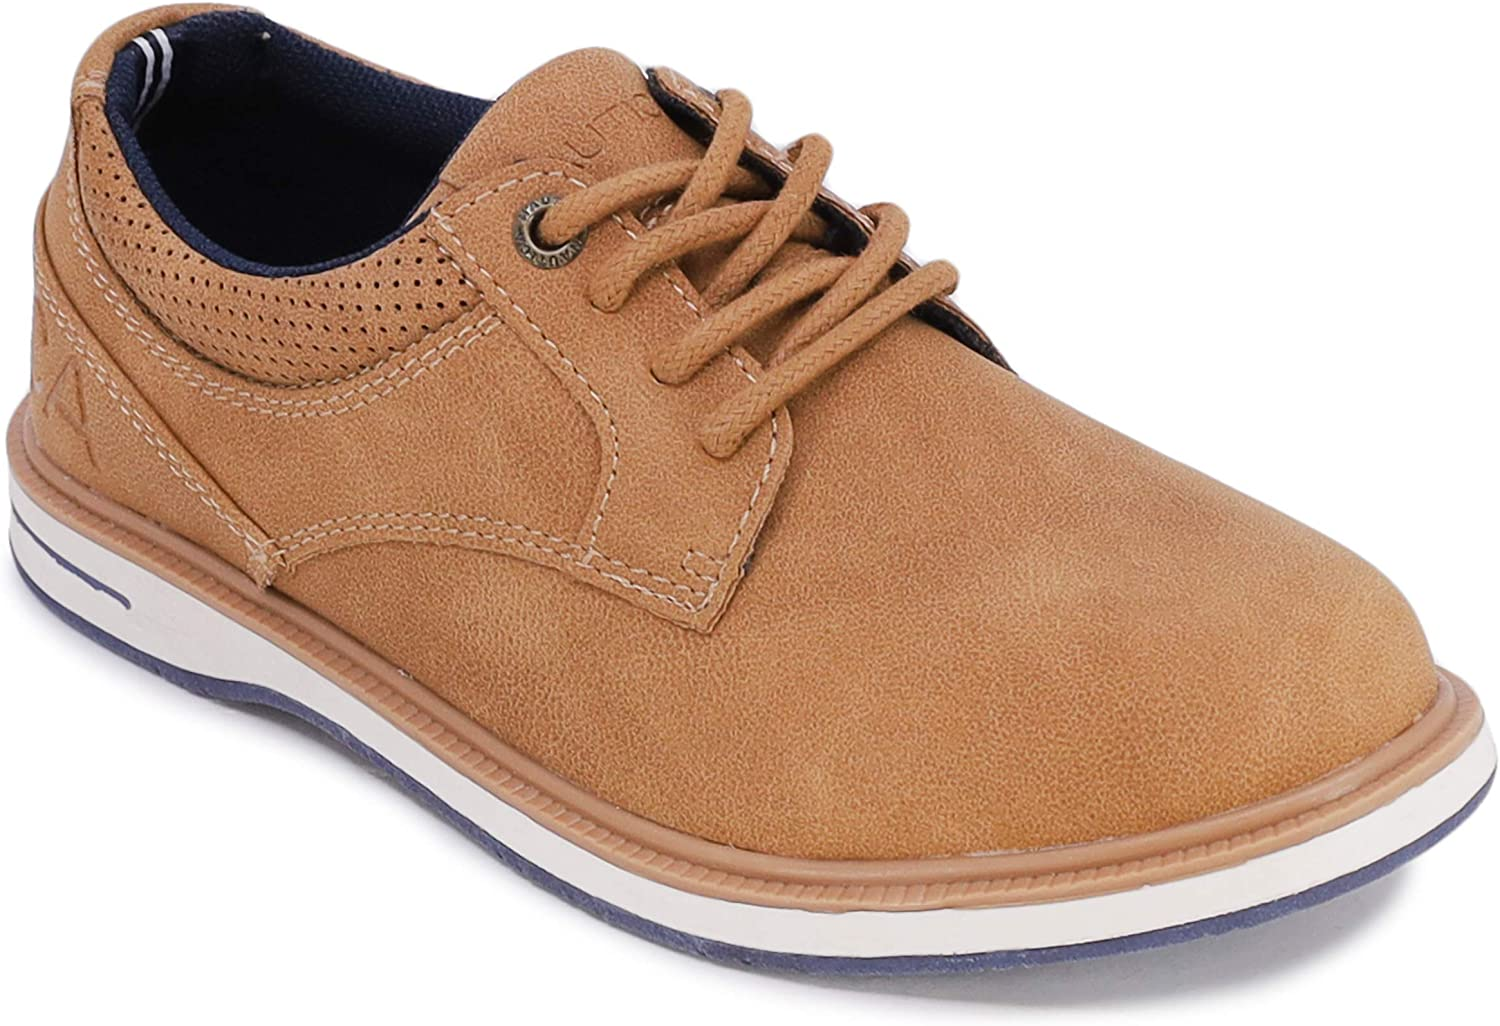 Nautica Kid's Lace Up Casual Shoe Athletic Sneaker -Dress Boat Shoe (Big Kid/Little Kid/Toddler)